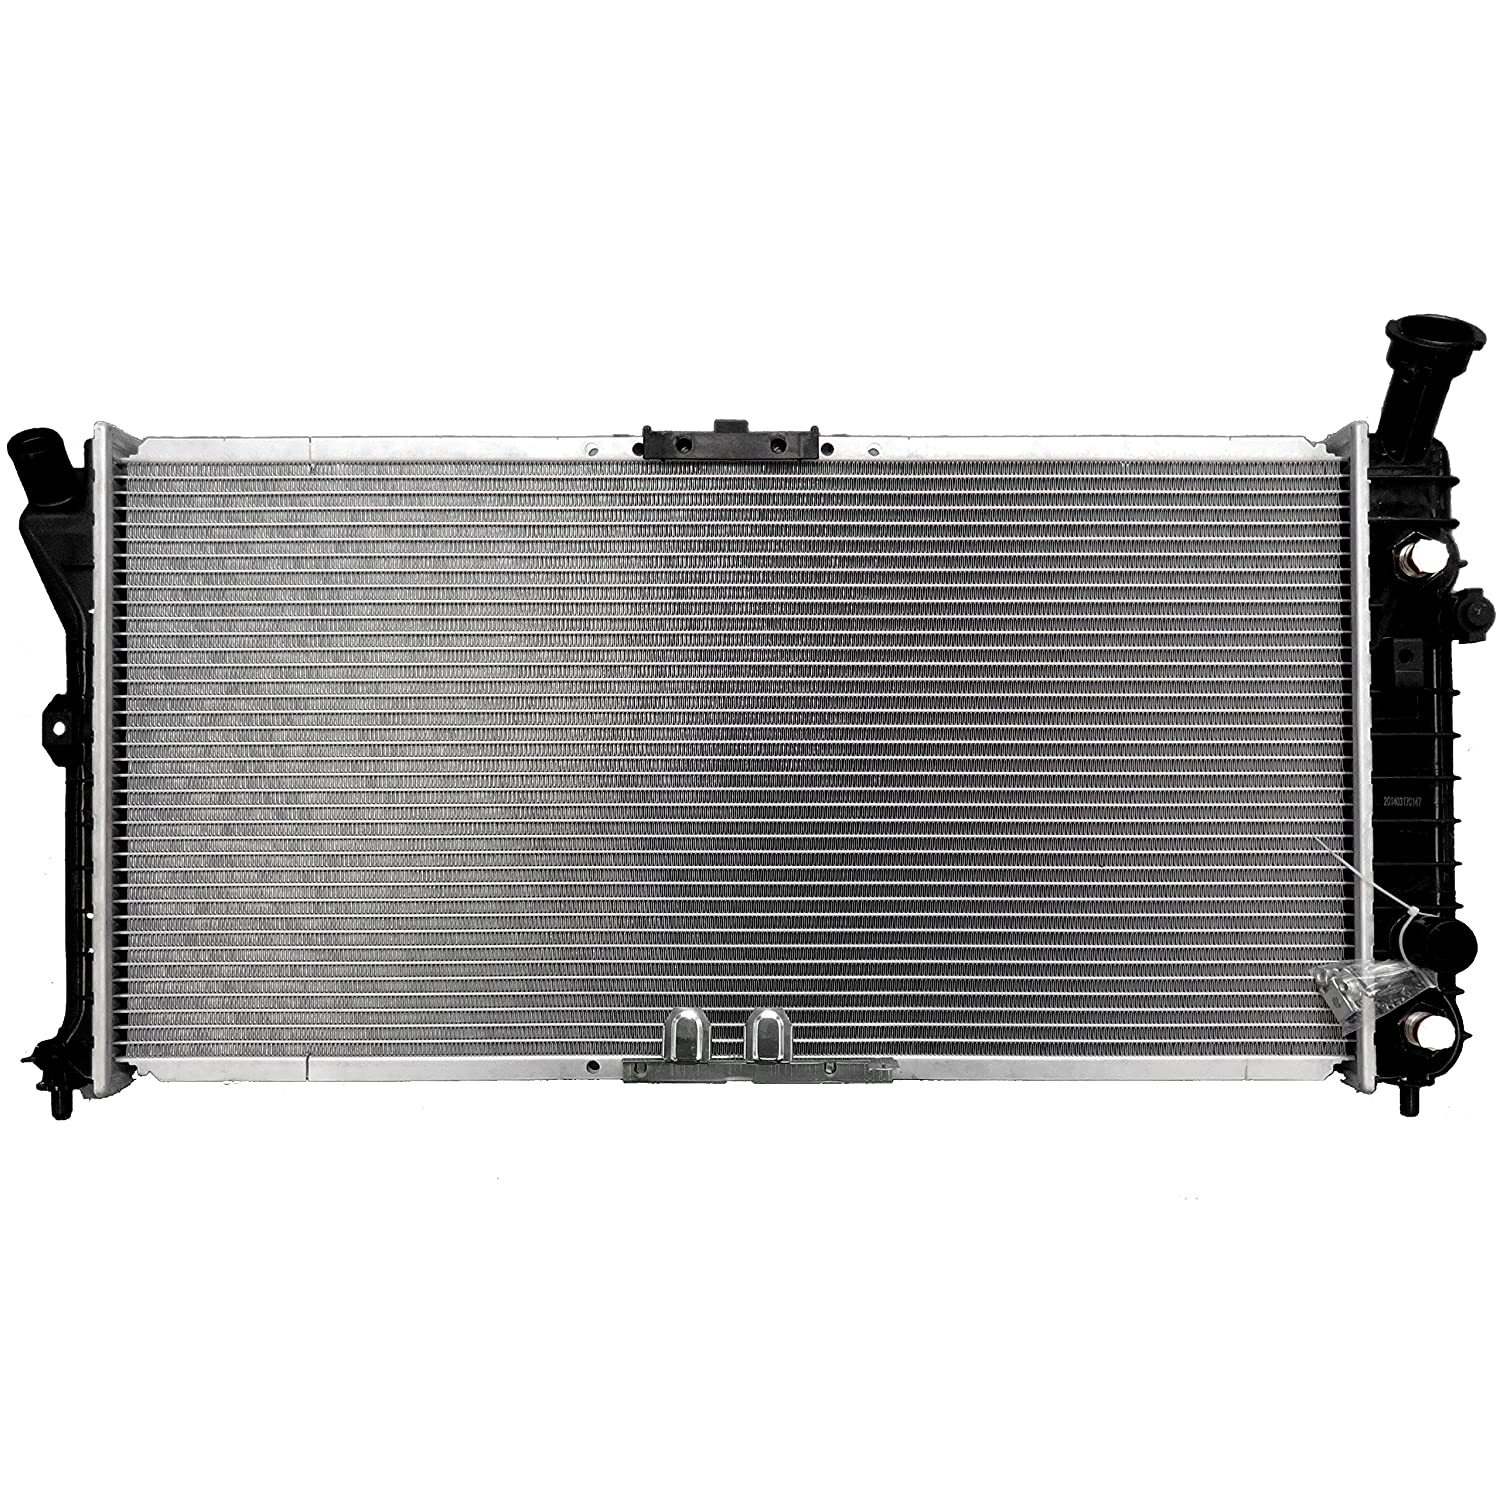 Eccpp New Aluminum Radiator 1889 Fits For 1997 1999 03 Buick Century Transmission Wiring Custom 2003 Pontiac Grand Prix Gt Automotive